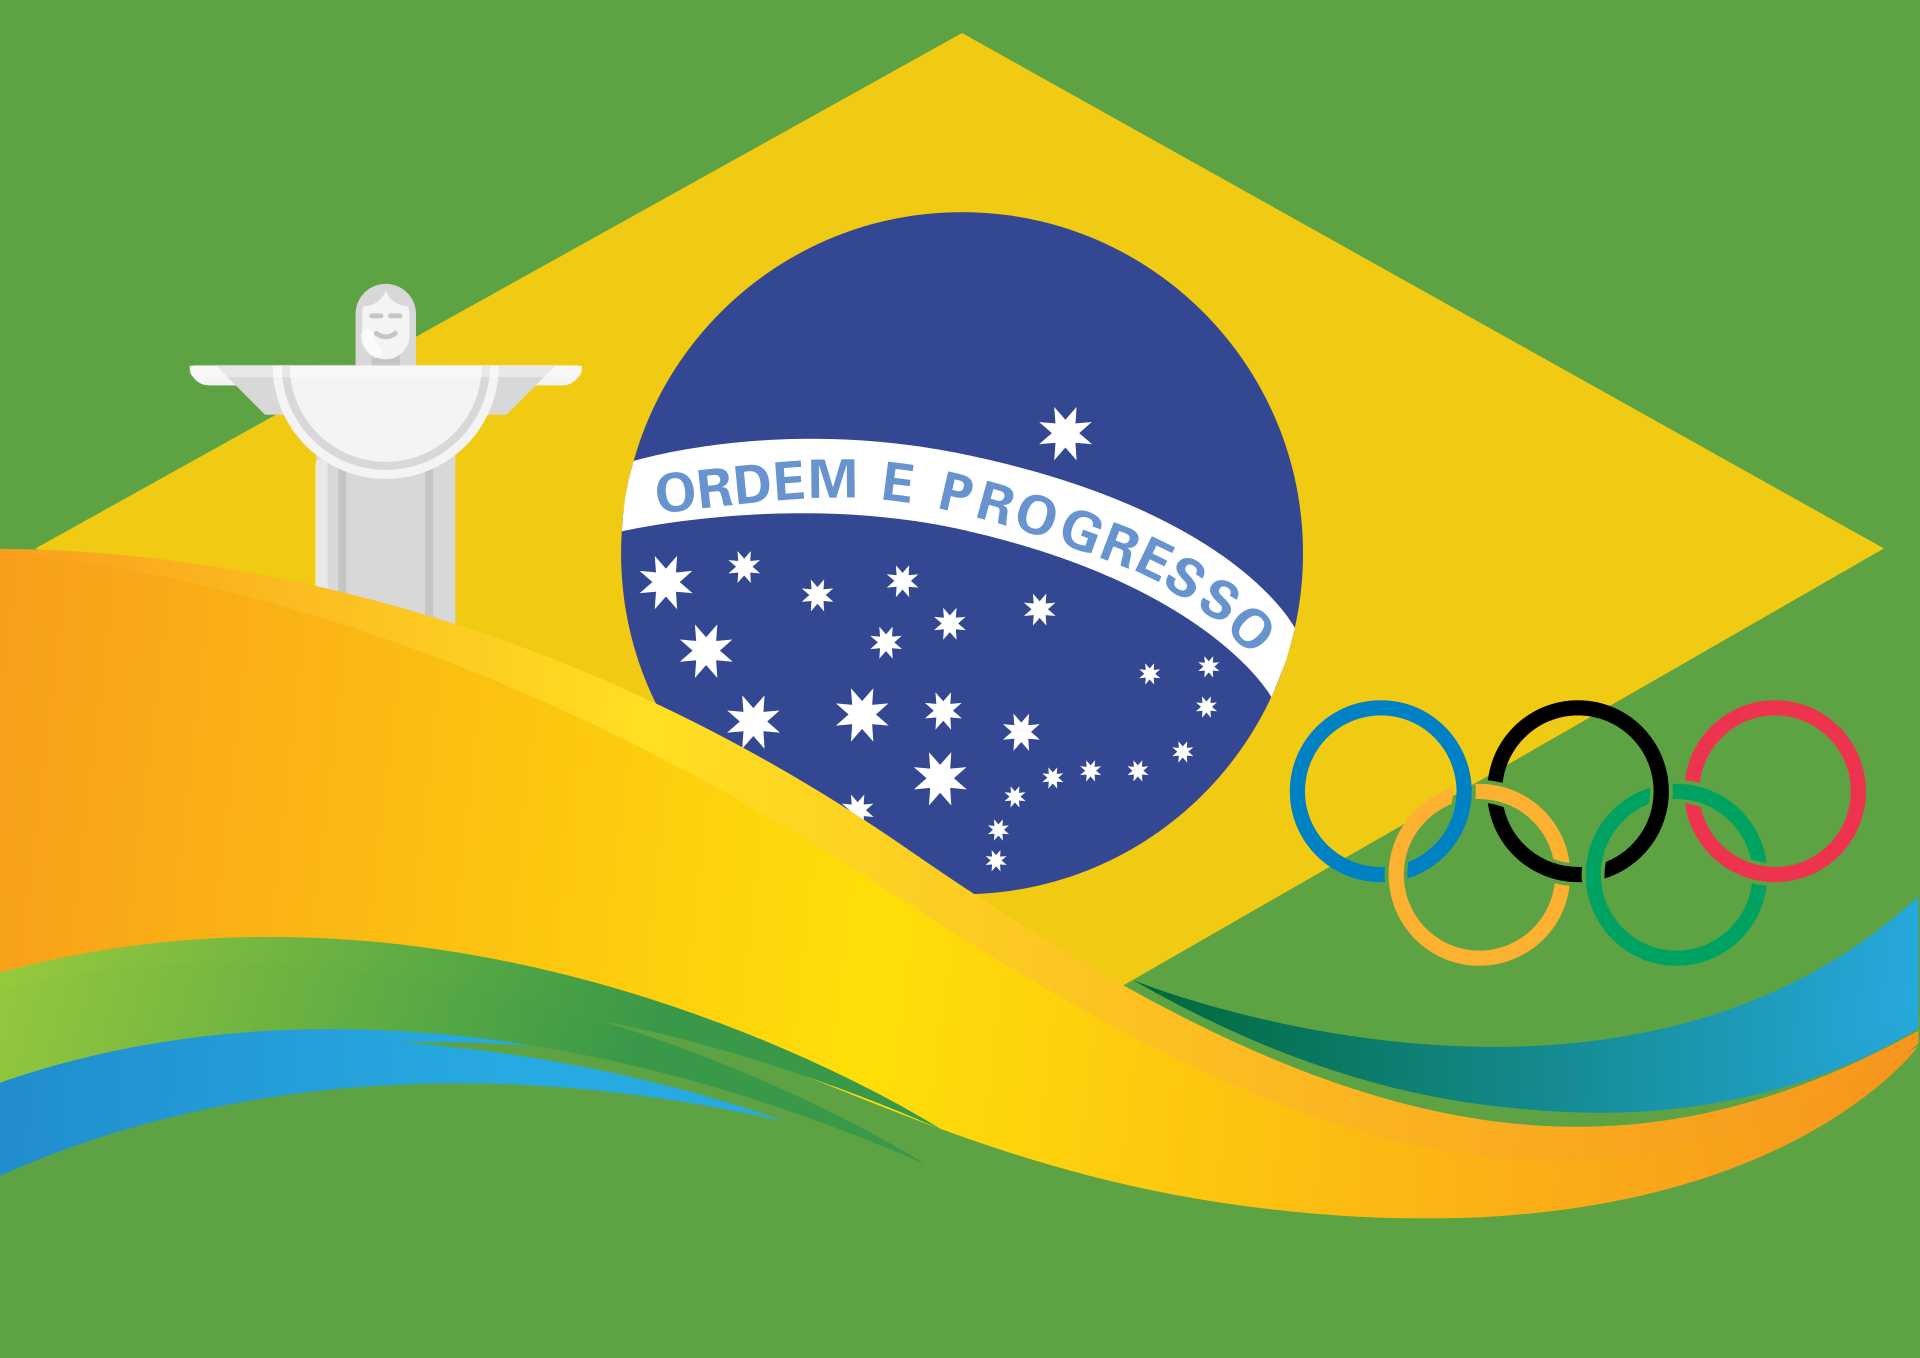 2016 Olympics - Online Viewing Breaks all Records